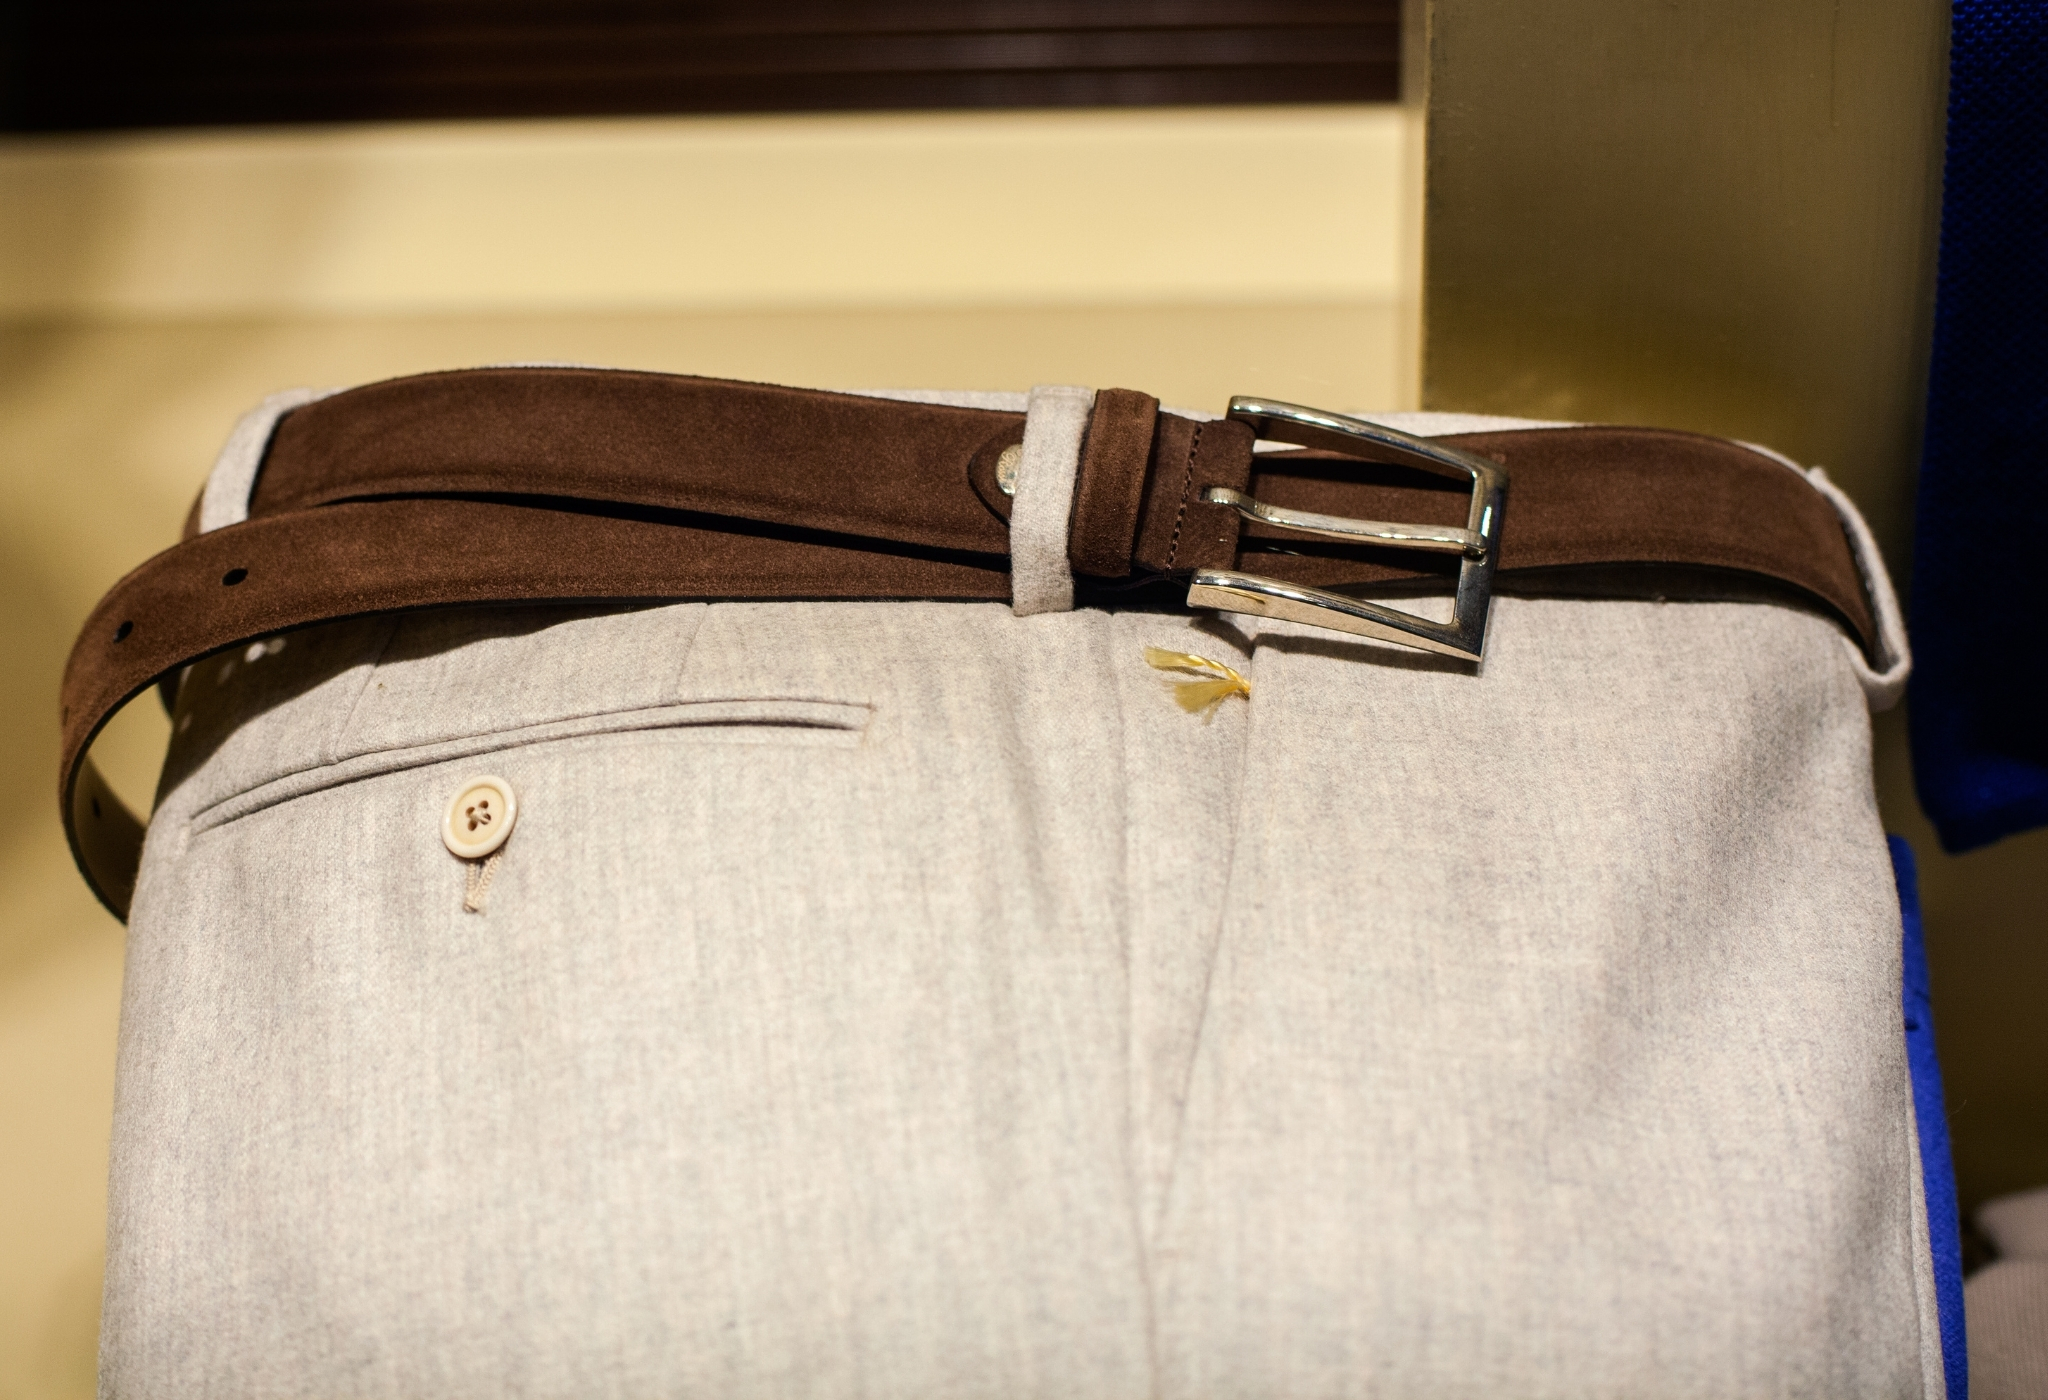 choosing the right pocket style is one of the best clothing hacks for guys